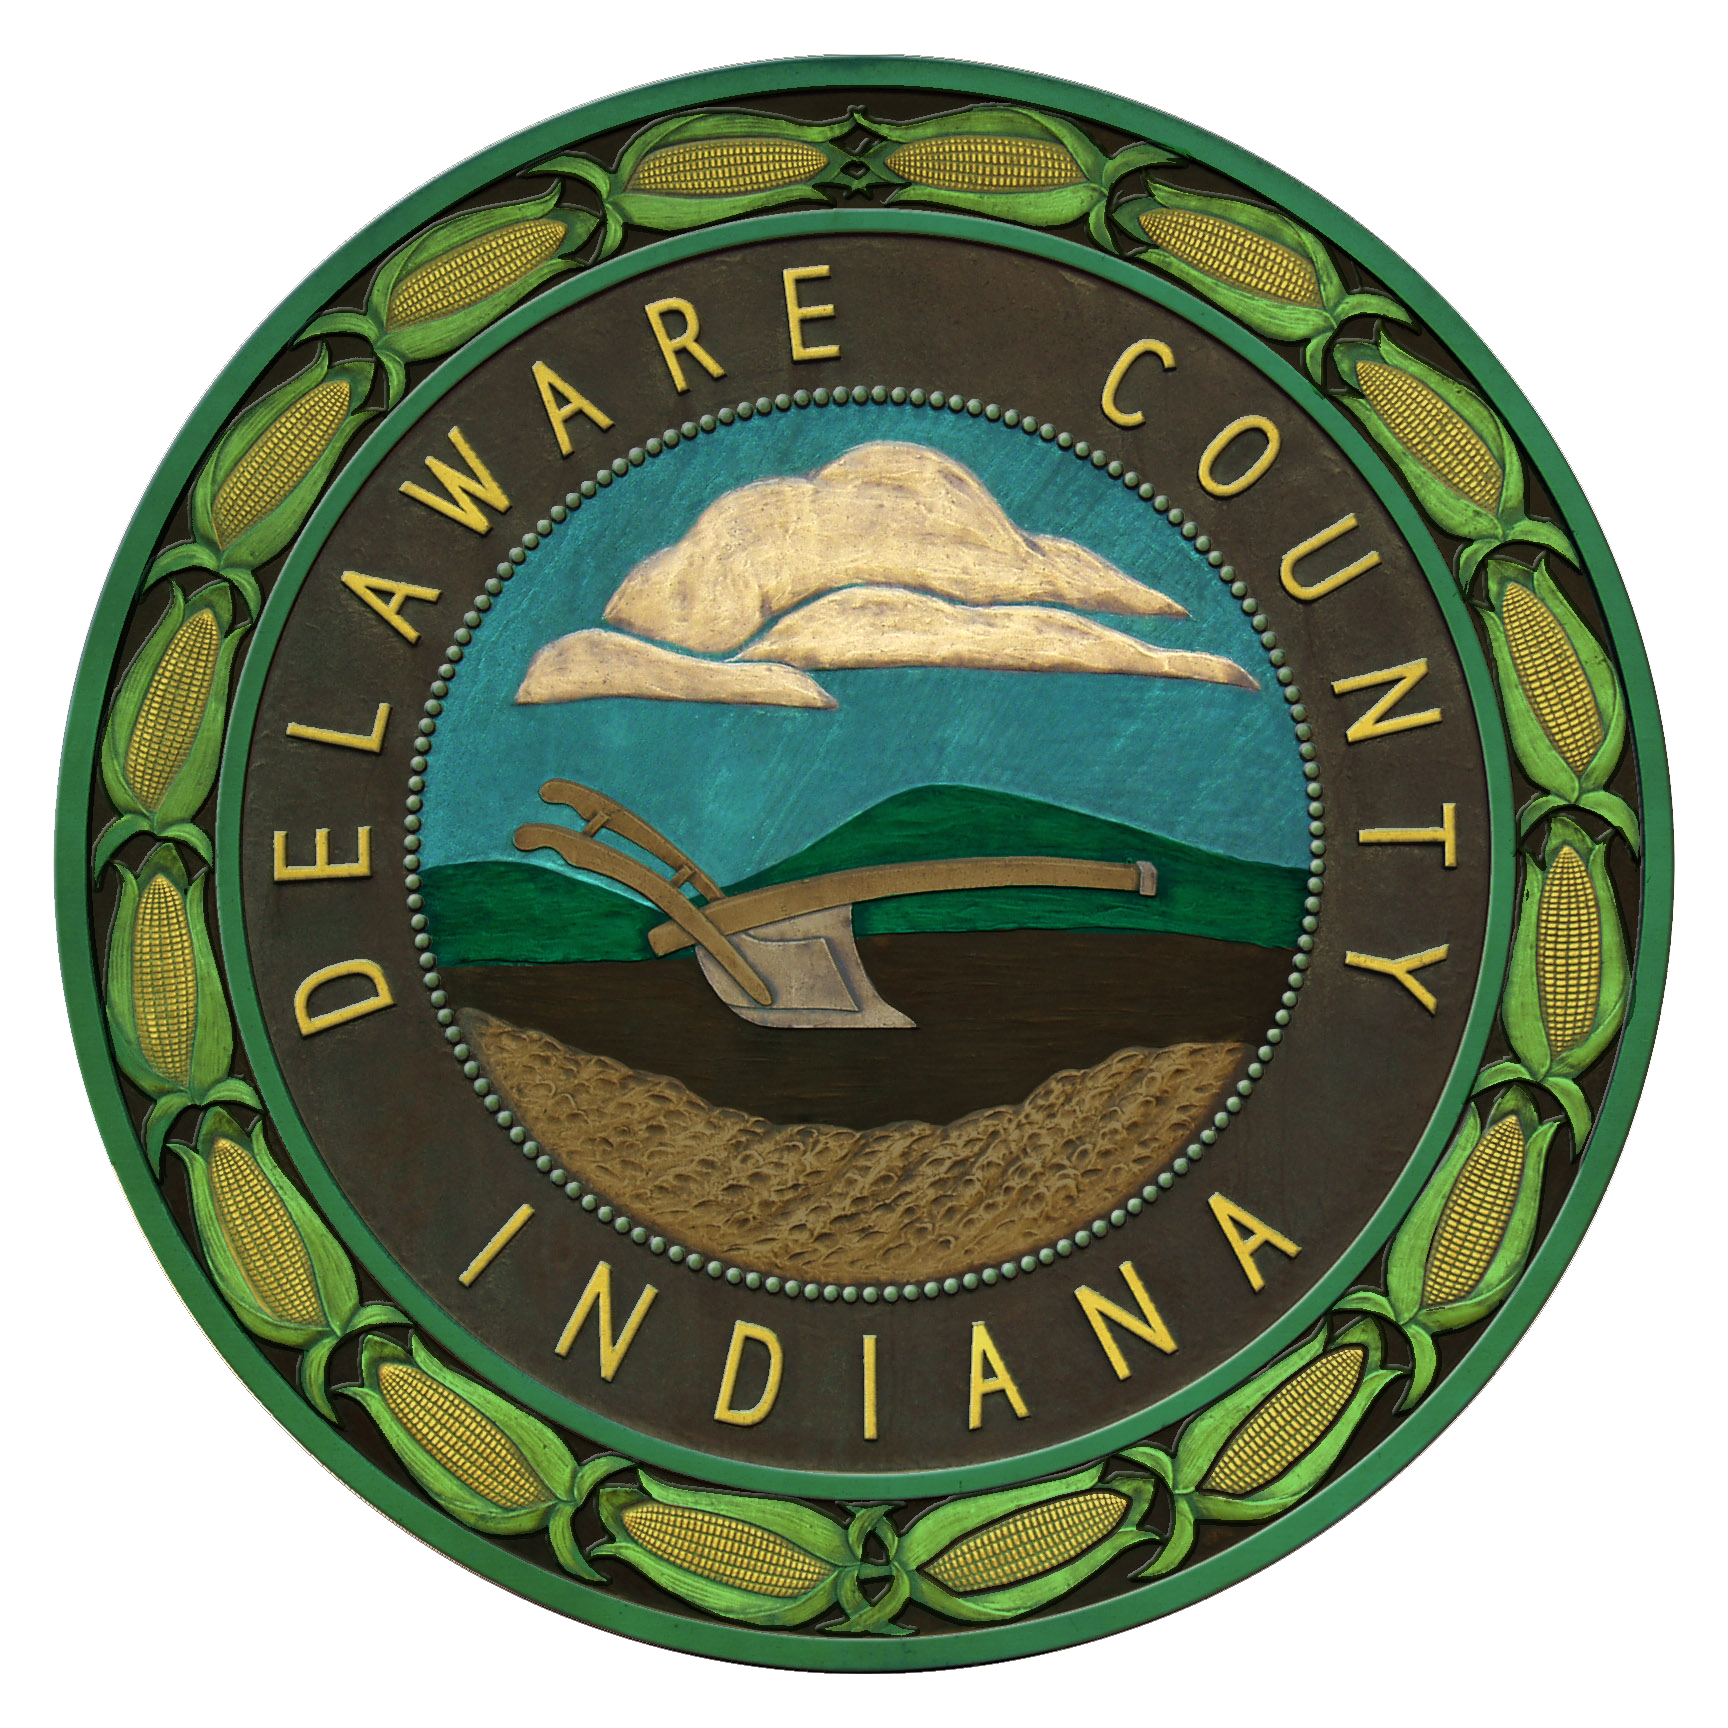 Delaware County Logo.png